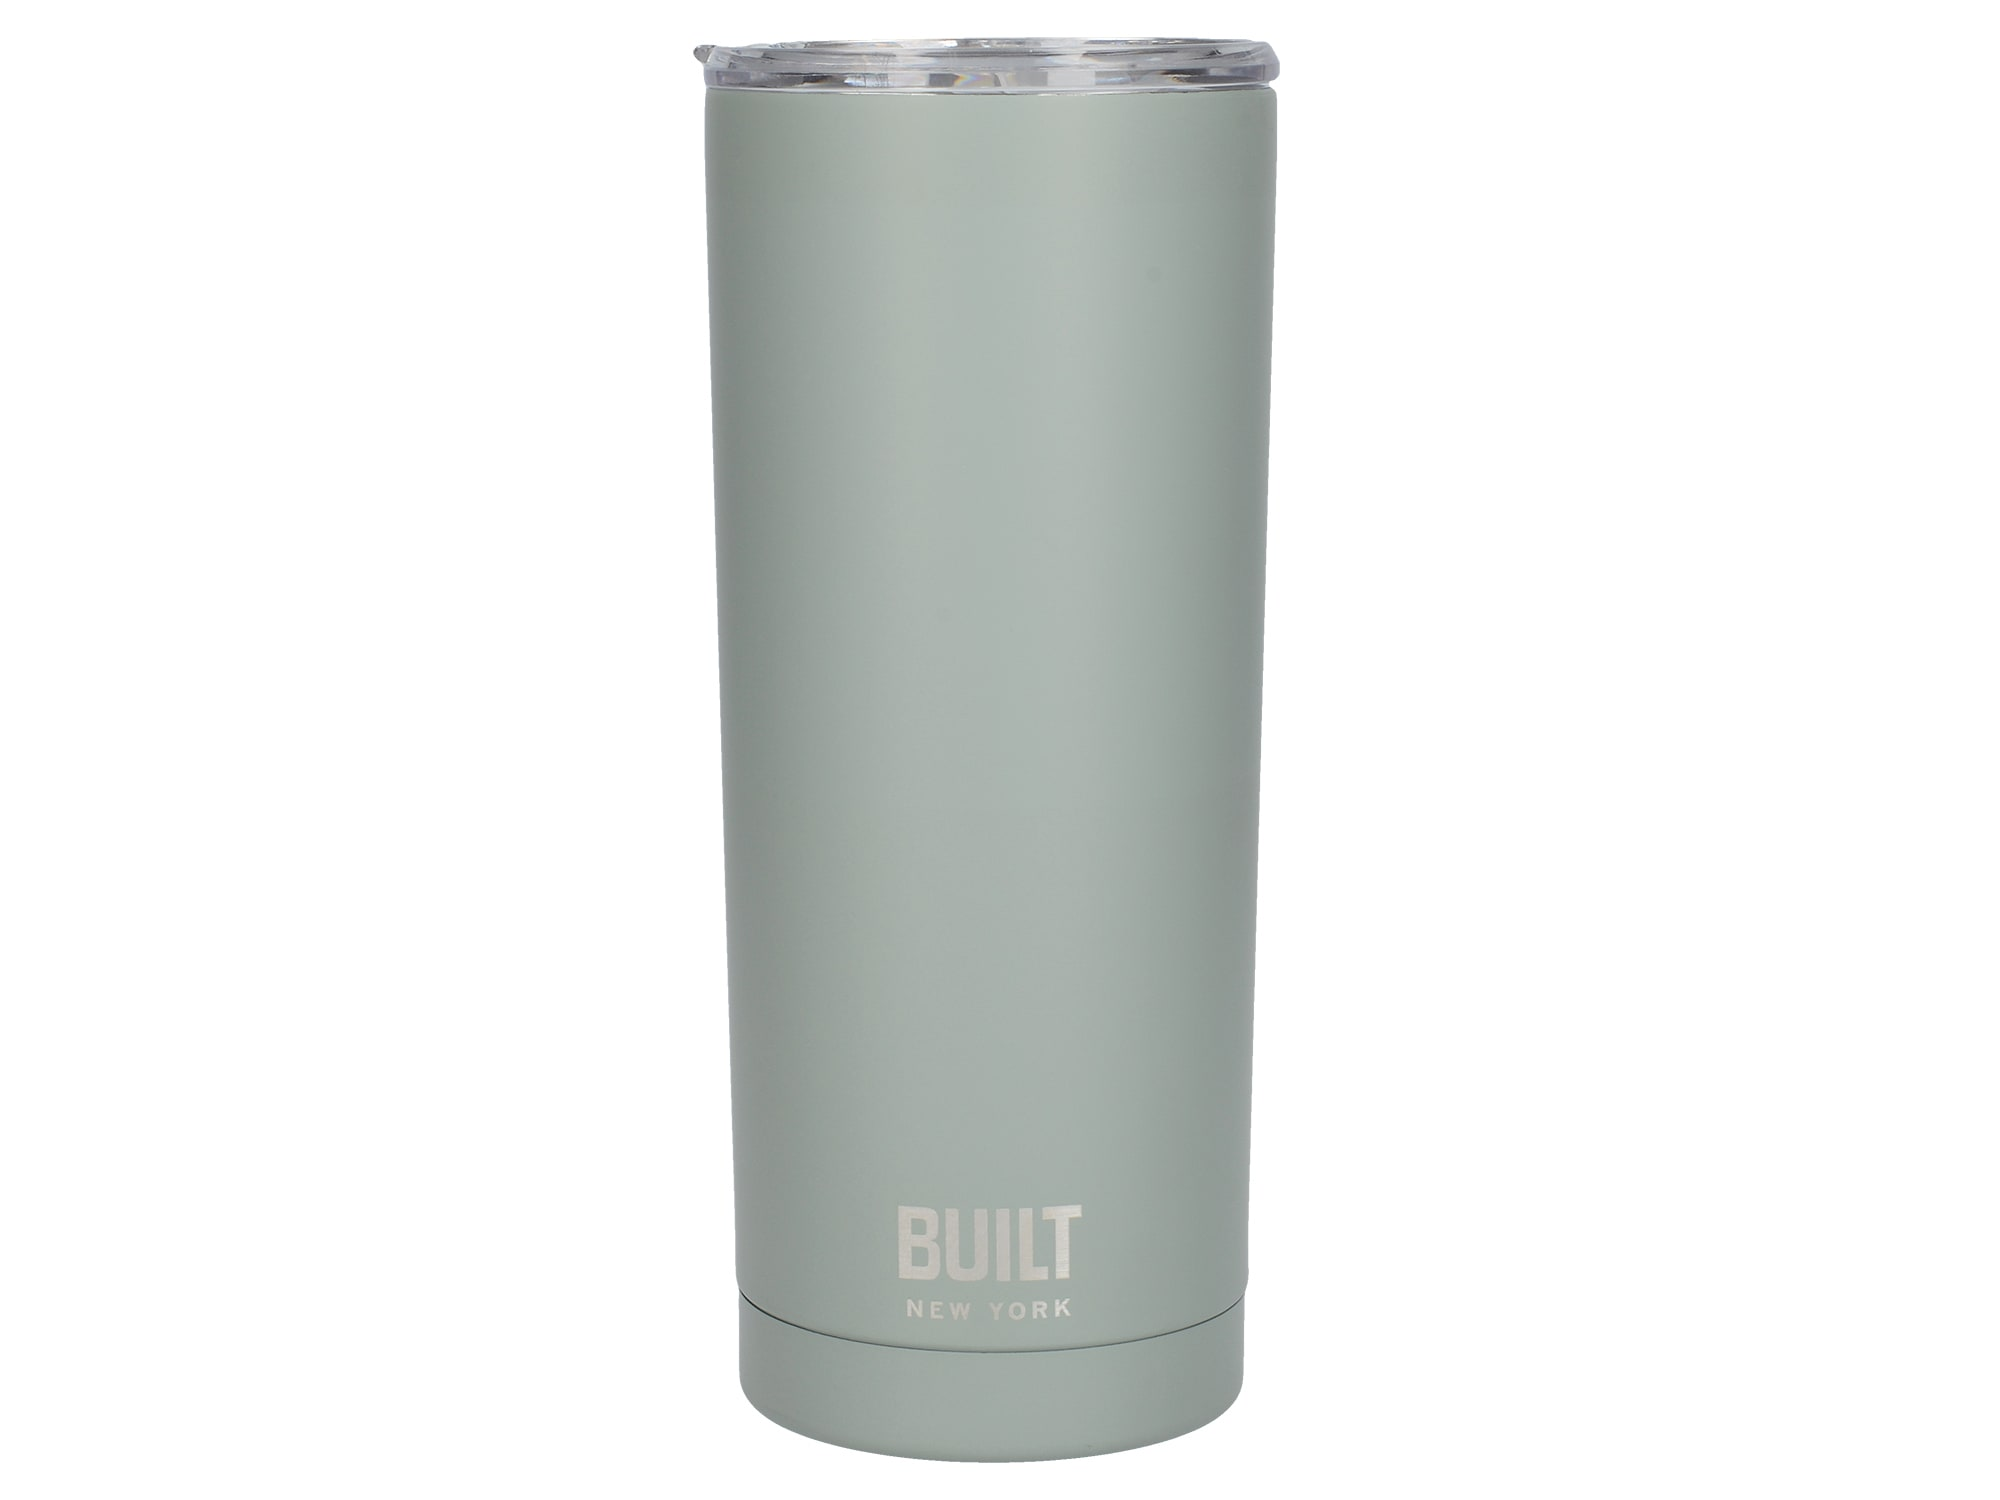 Built 20Oz Double Walled Stainless Steel Water Tumbler Storm Grey